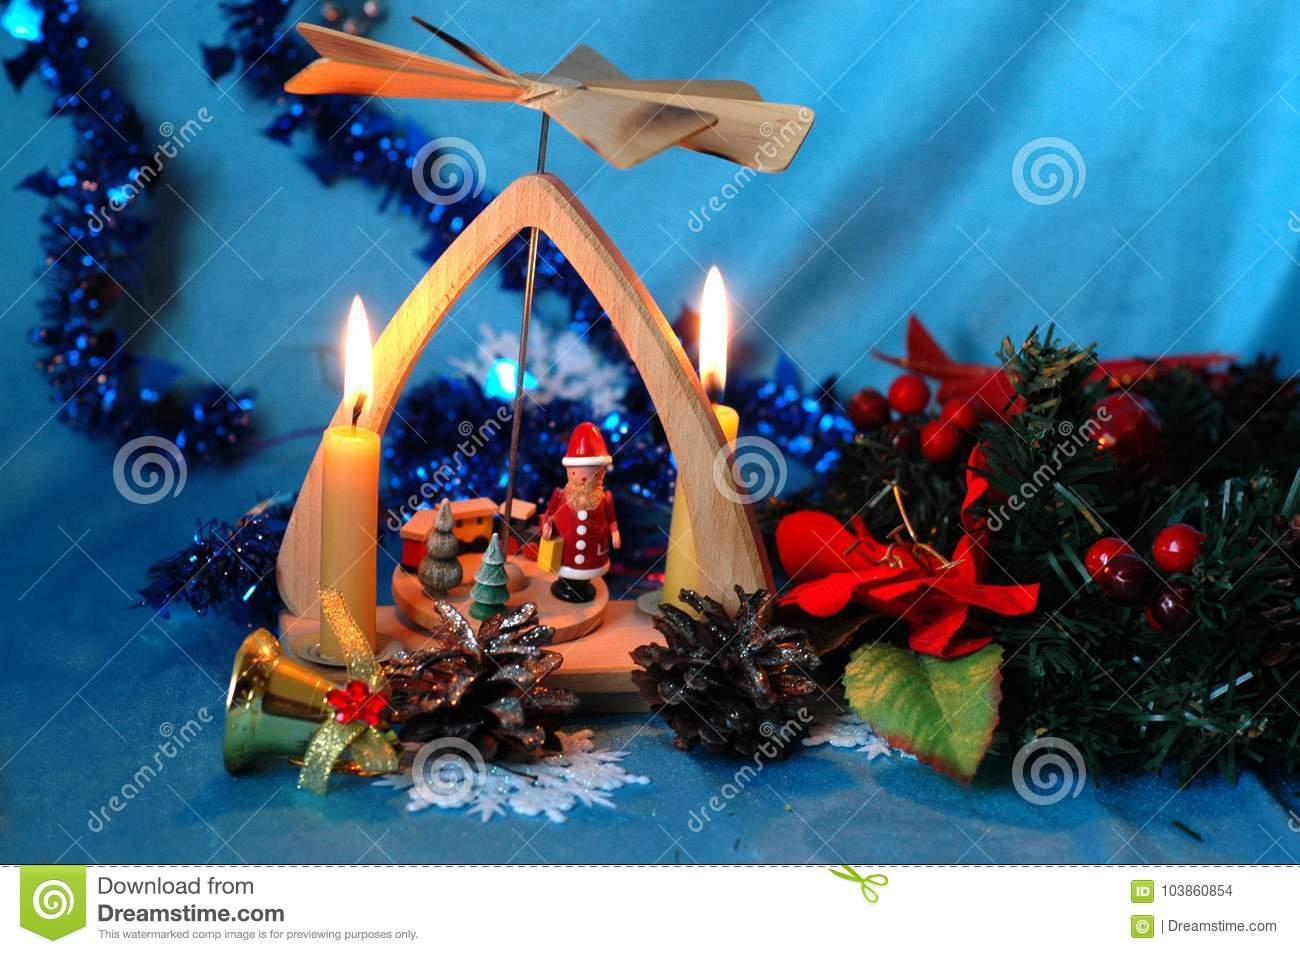 Christmas pyramid with candles, a wreath of fir branches and flo